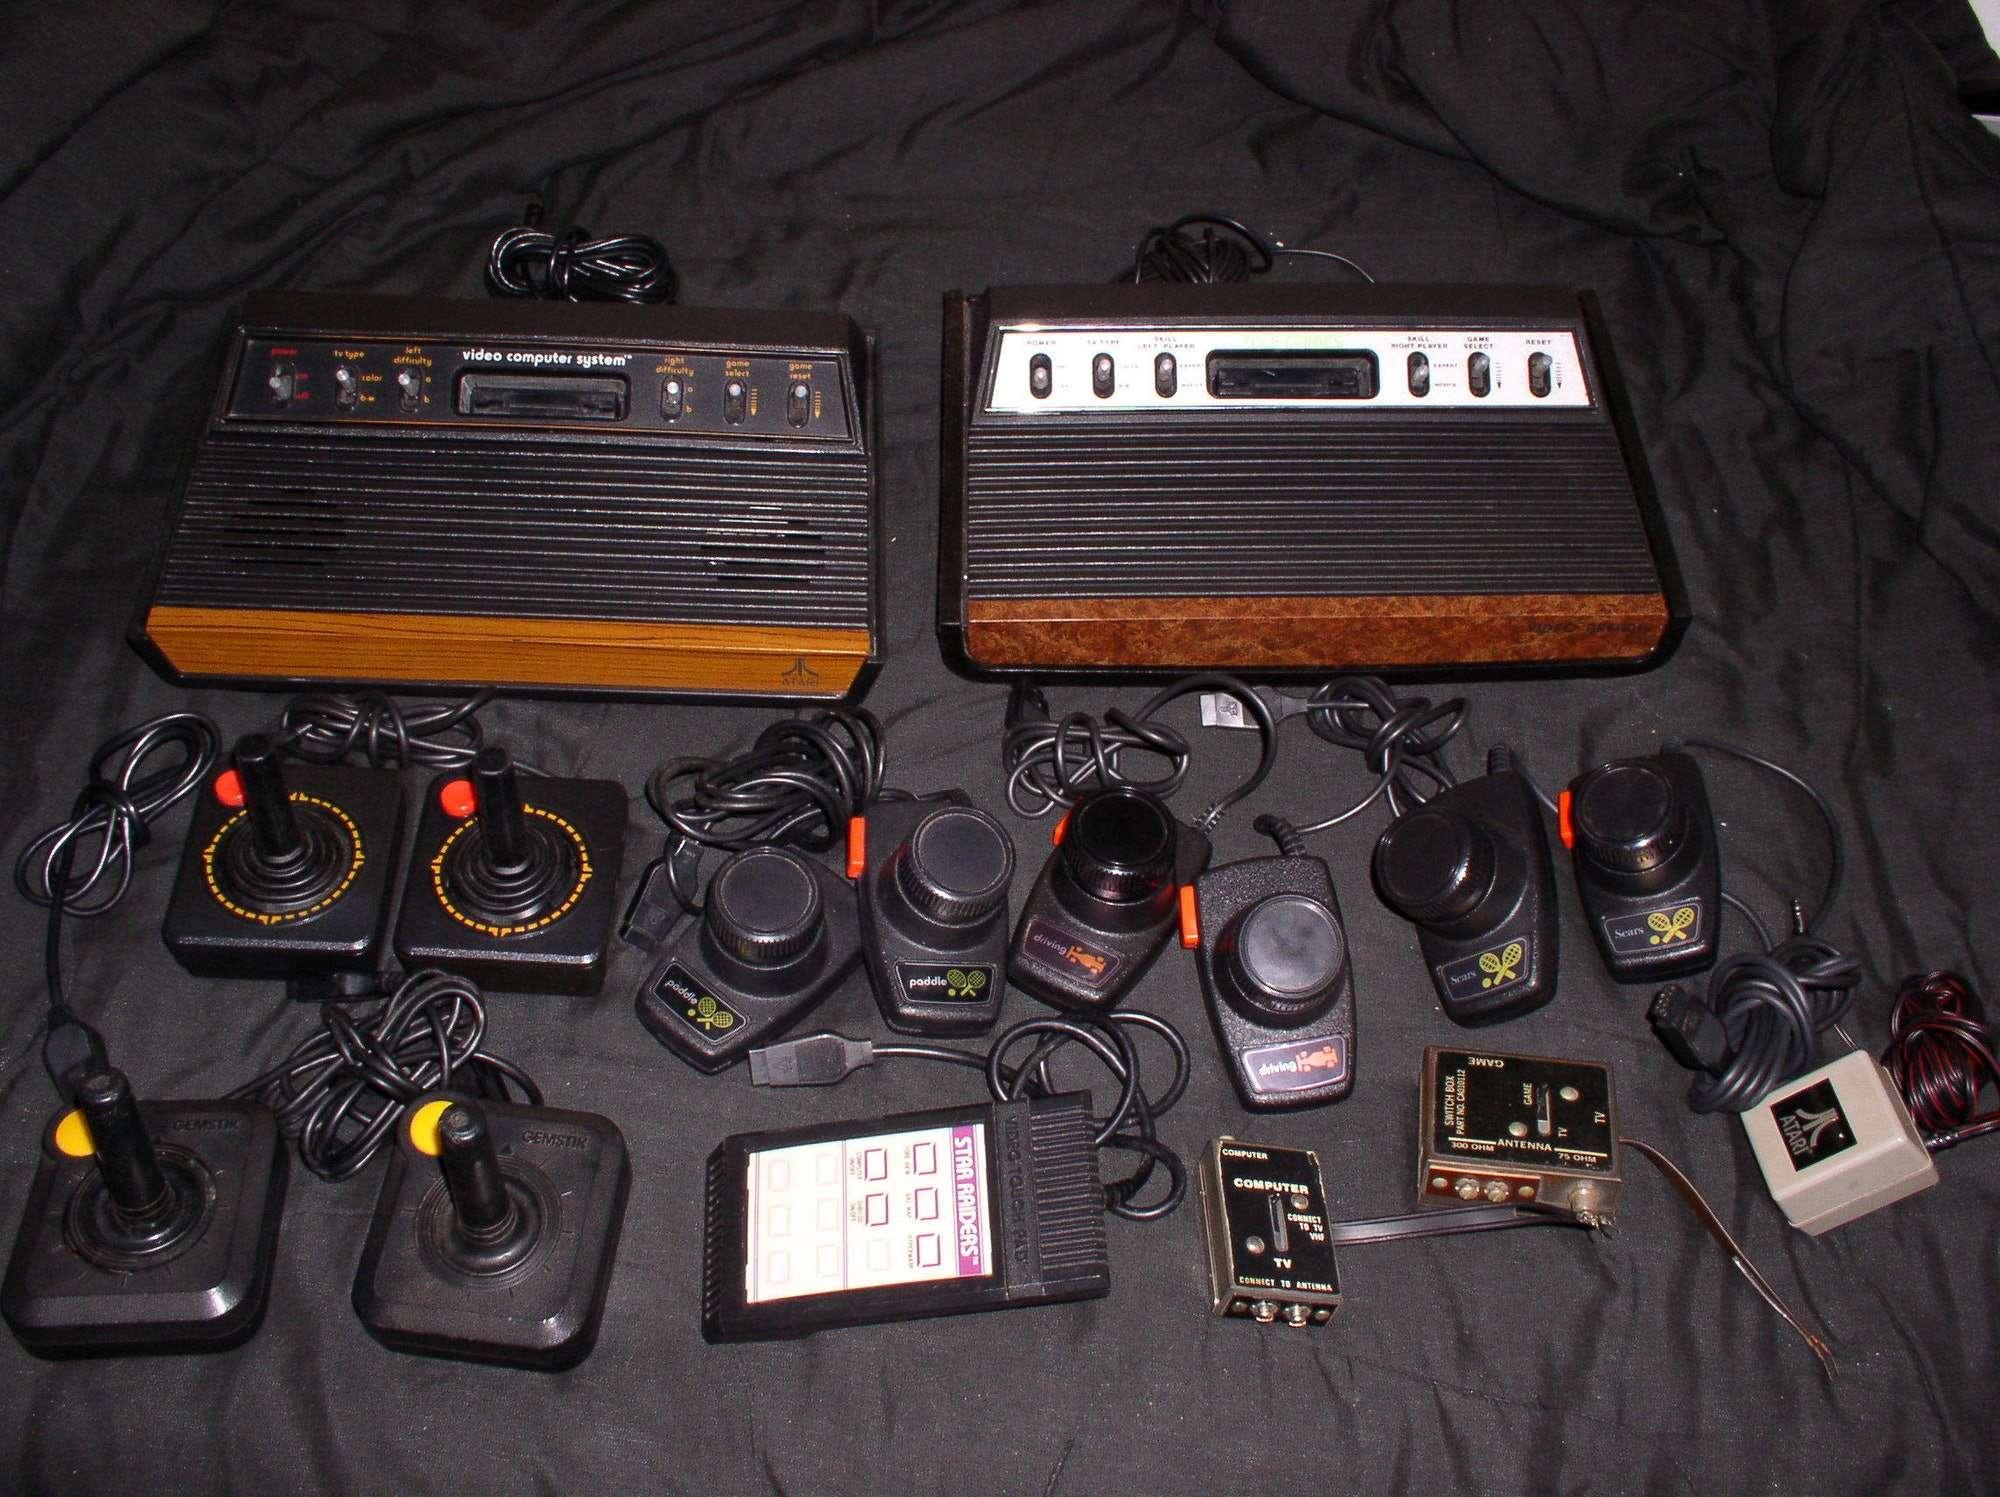 Atari 2600 game games controllers paddle